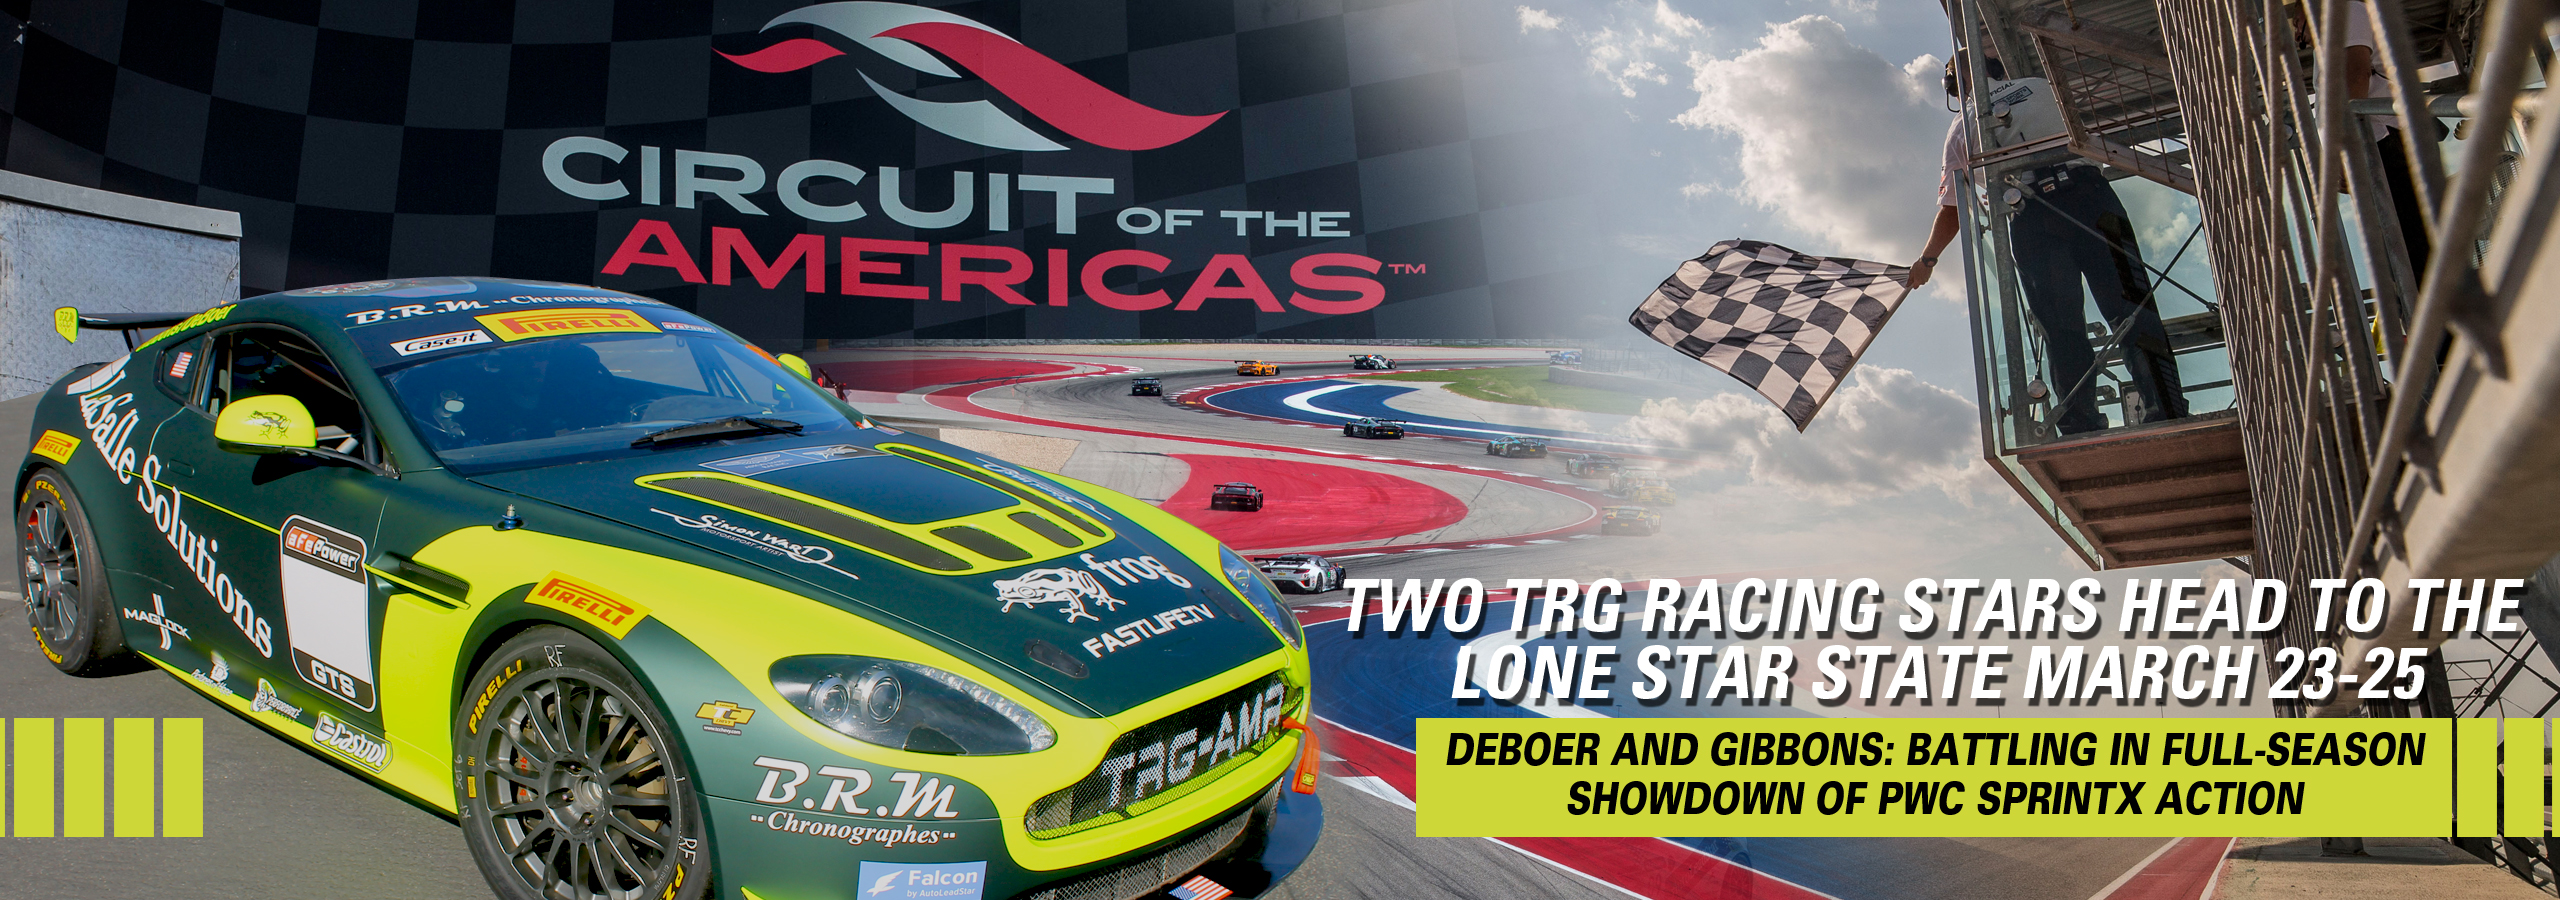 Two TRG Racing Stars Head to the  Lone Star State March 23-25